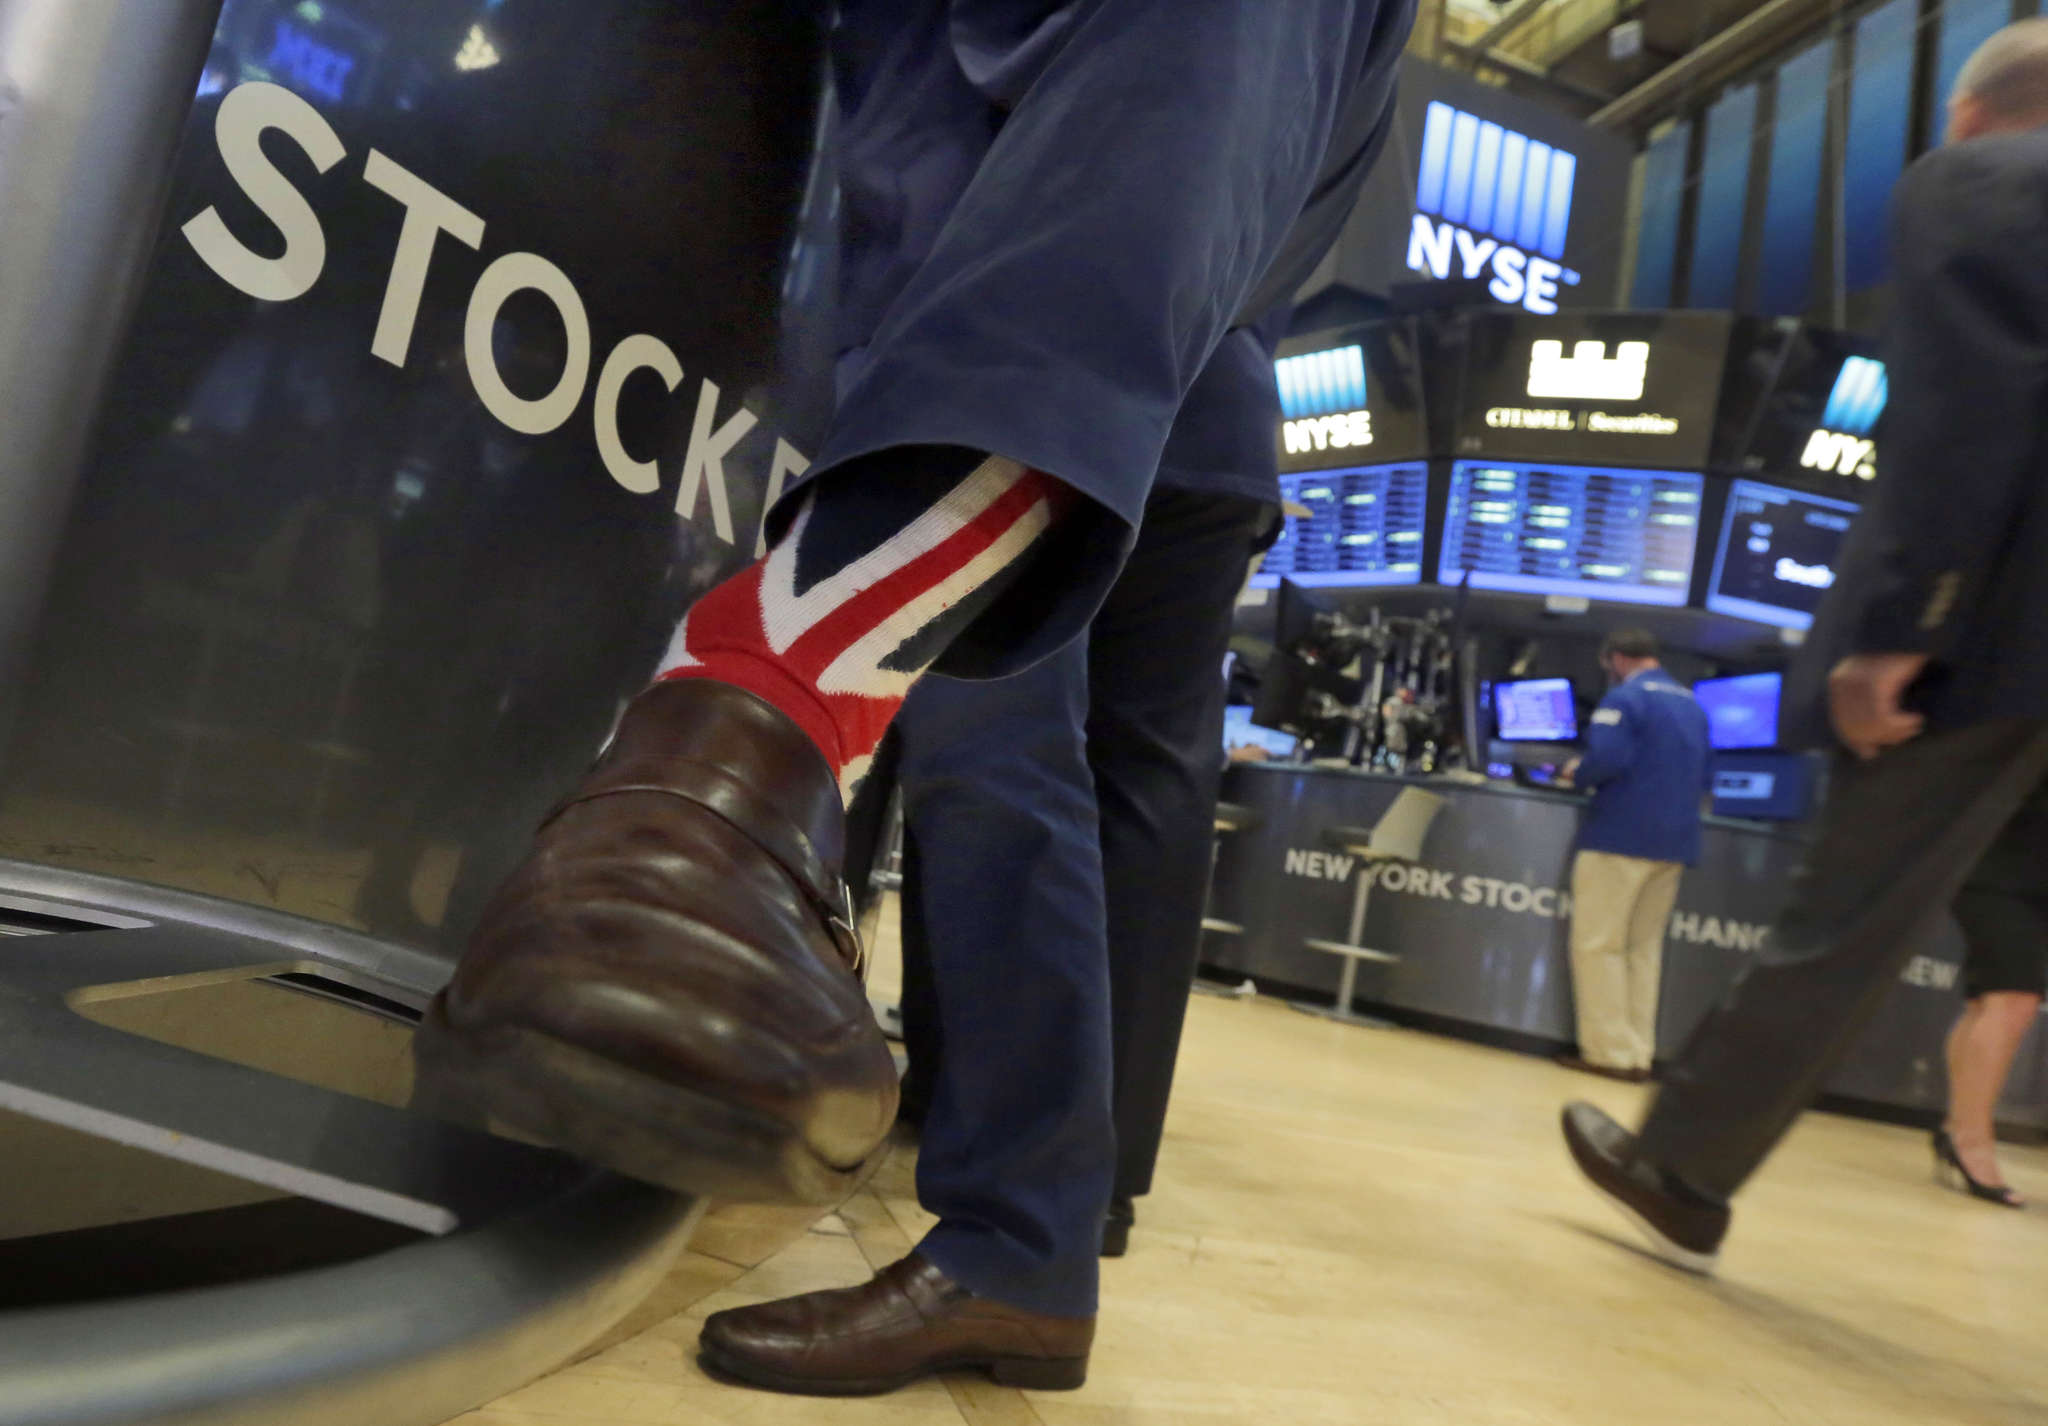 Stocks specialist Michael Pistillo sported Union Jack socks while working on the floor of the New York Stock Exchange on Friday.